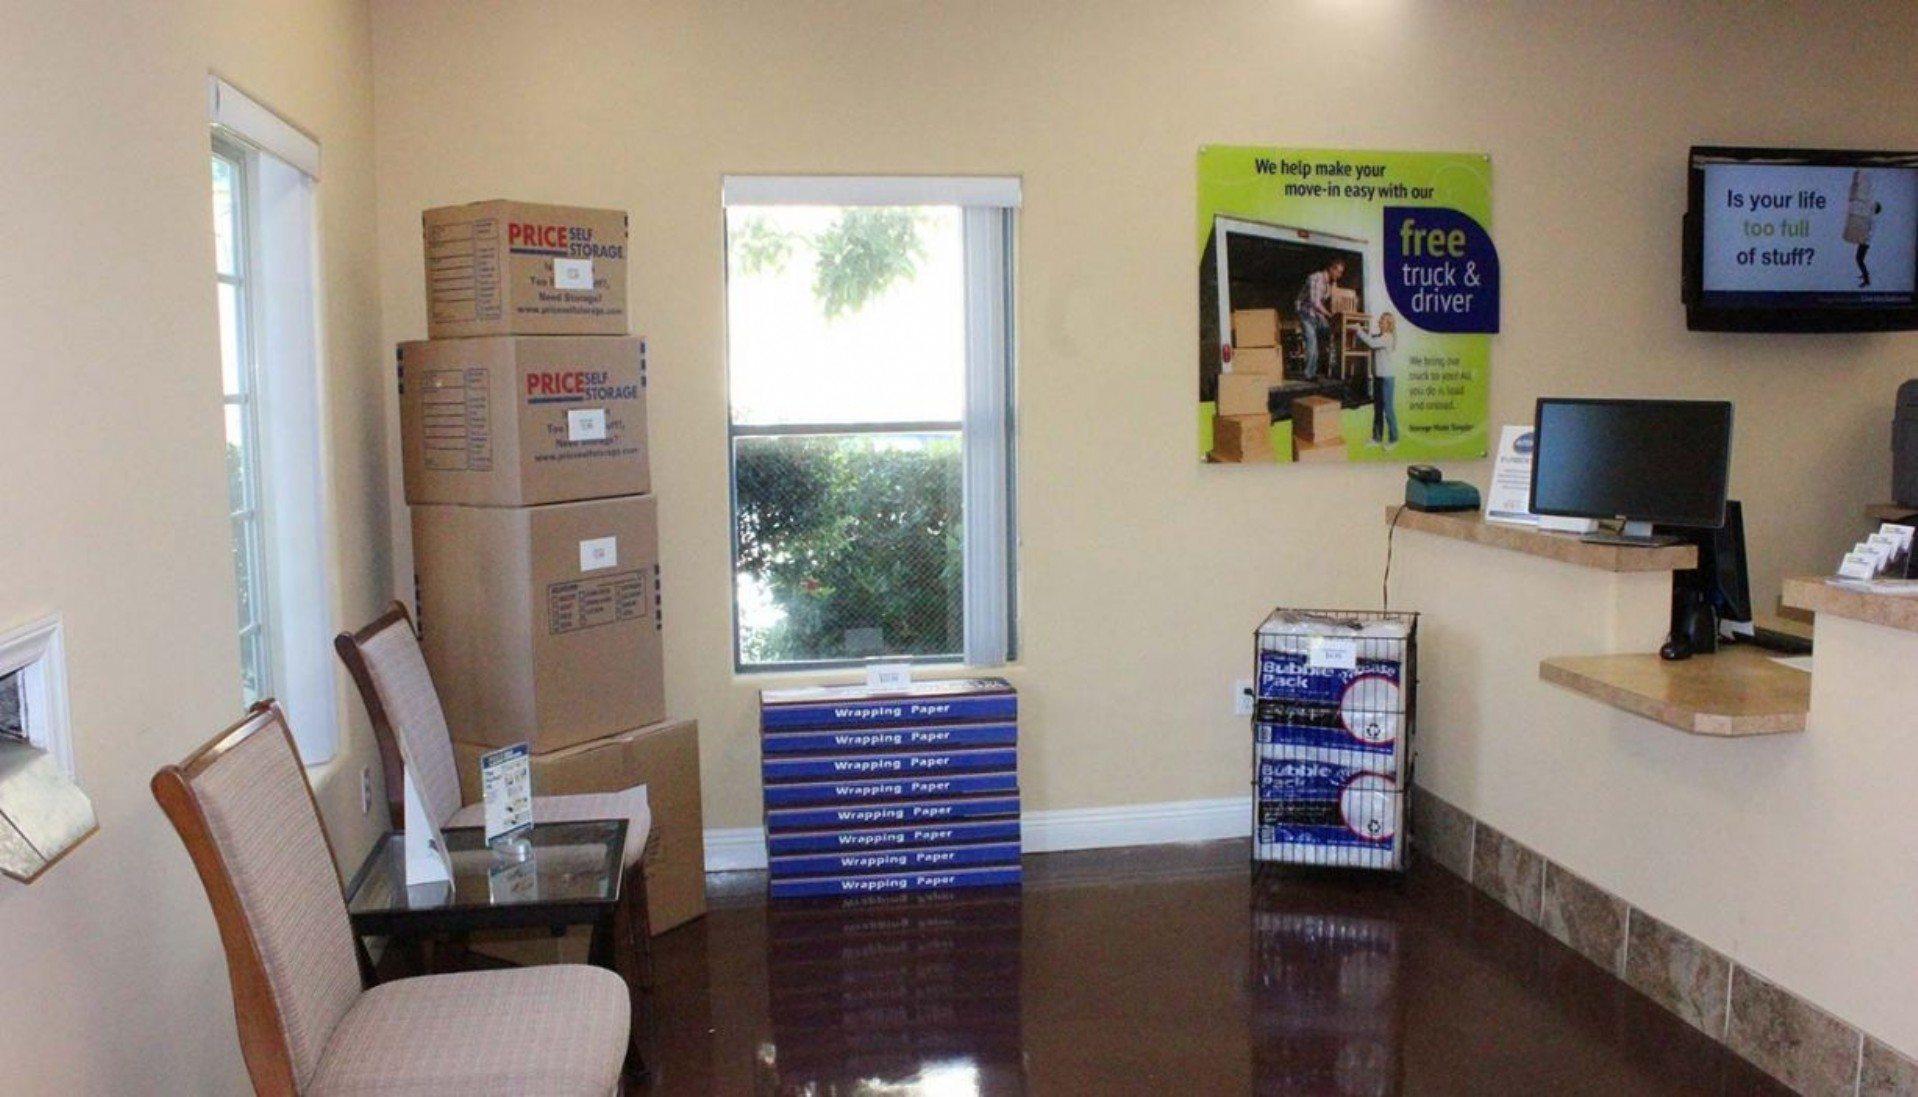 Rental office moving box display, packing paper and bubble wrap merchandise